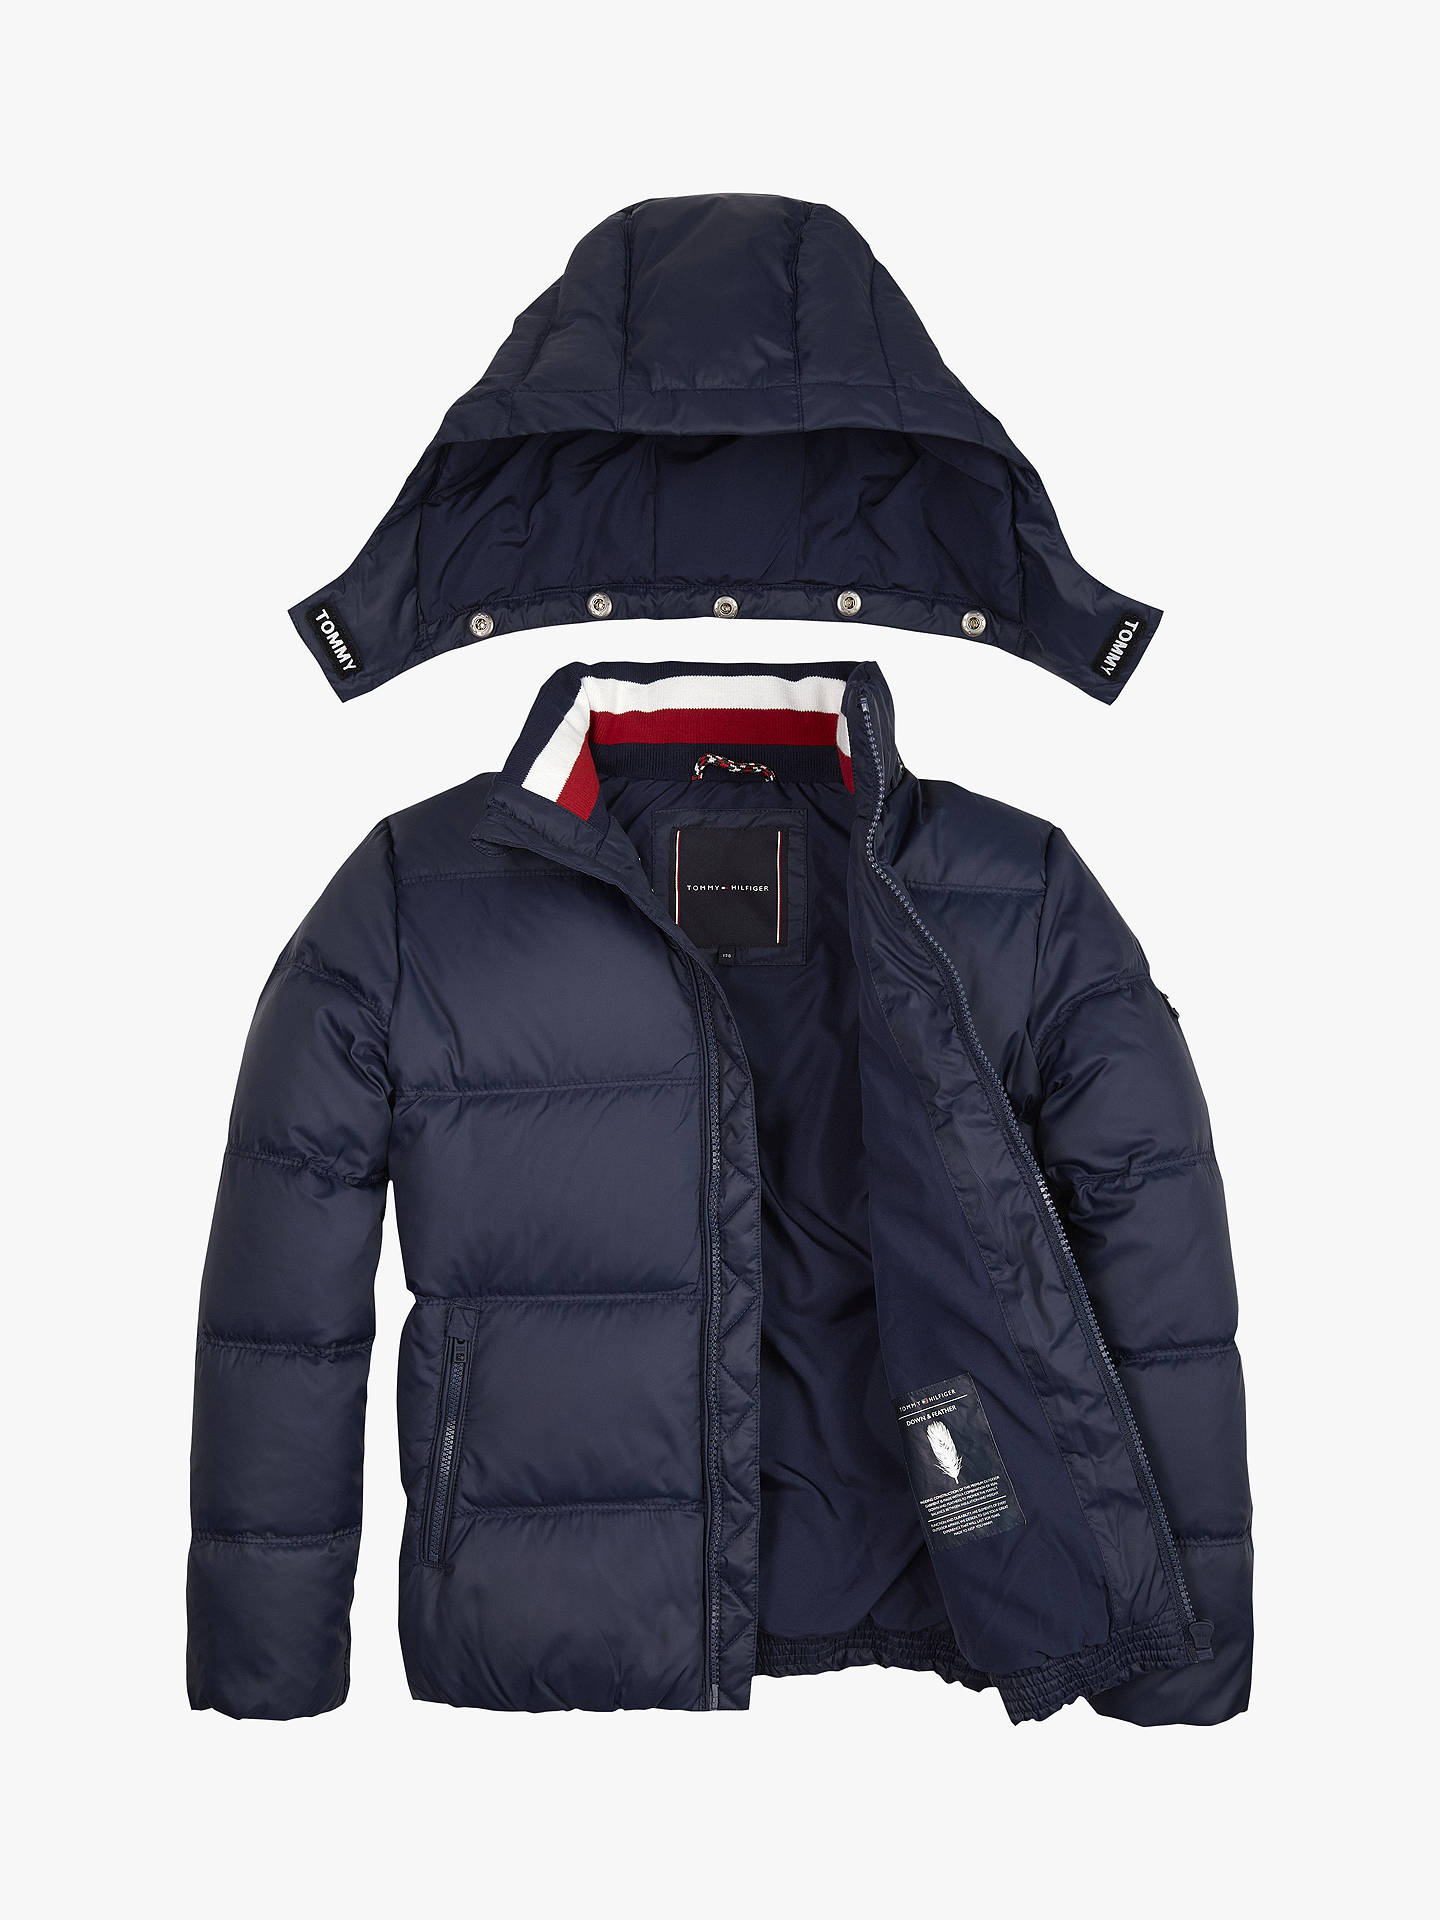 buy best choice casual shoes Tommy Hilfiger Boys' Down Jacket, Navy at John Lewis & Partners